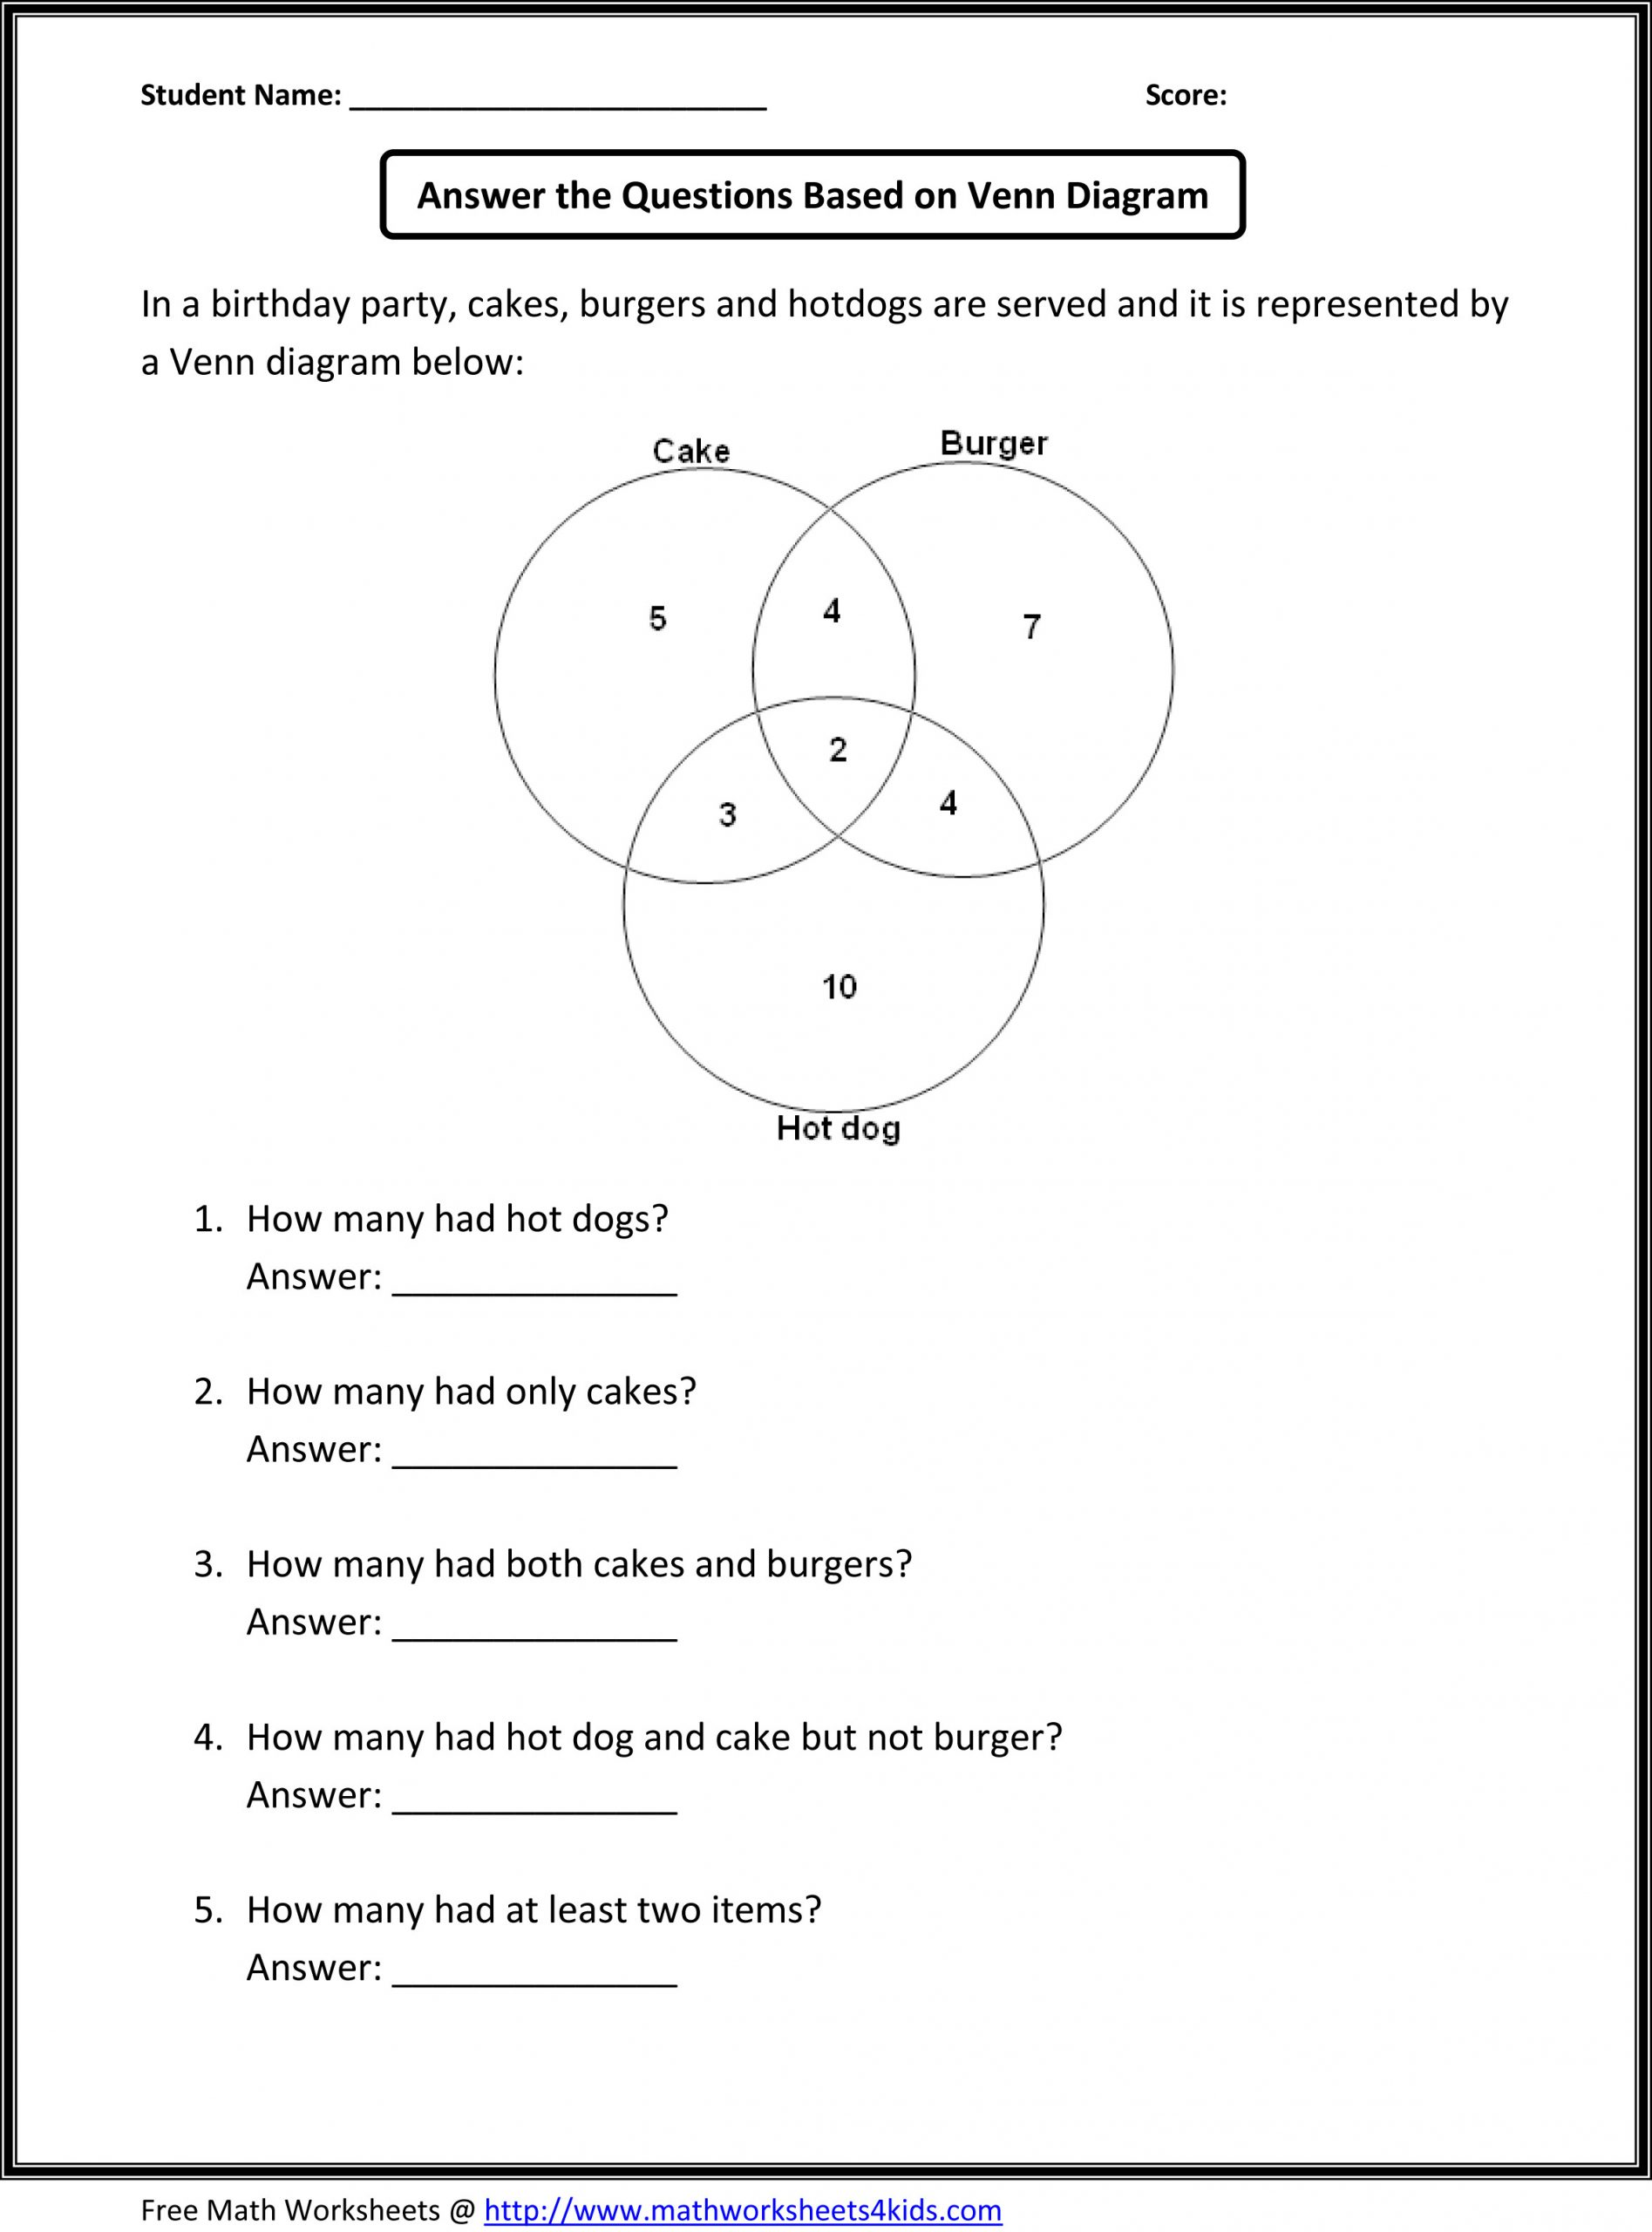 Probability Worksheet 7th Grade 14 Best Of Probability Worksheet 7th Grade Practice